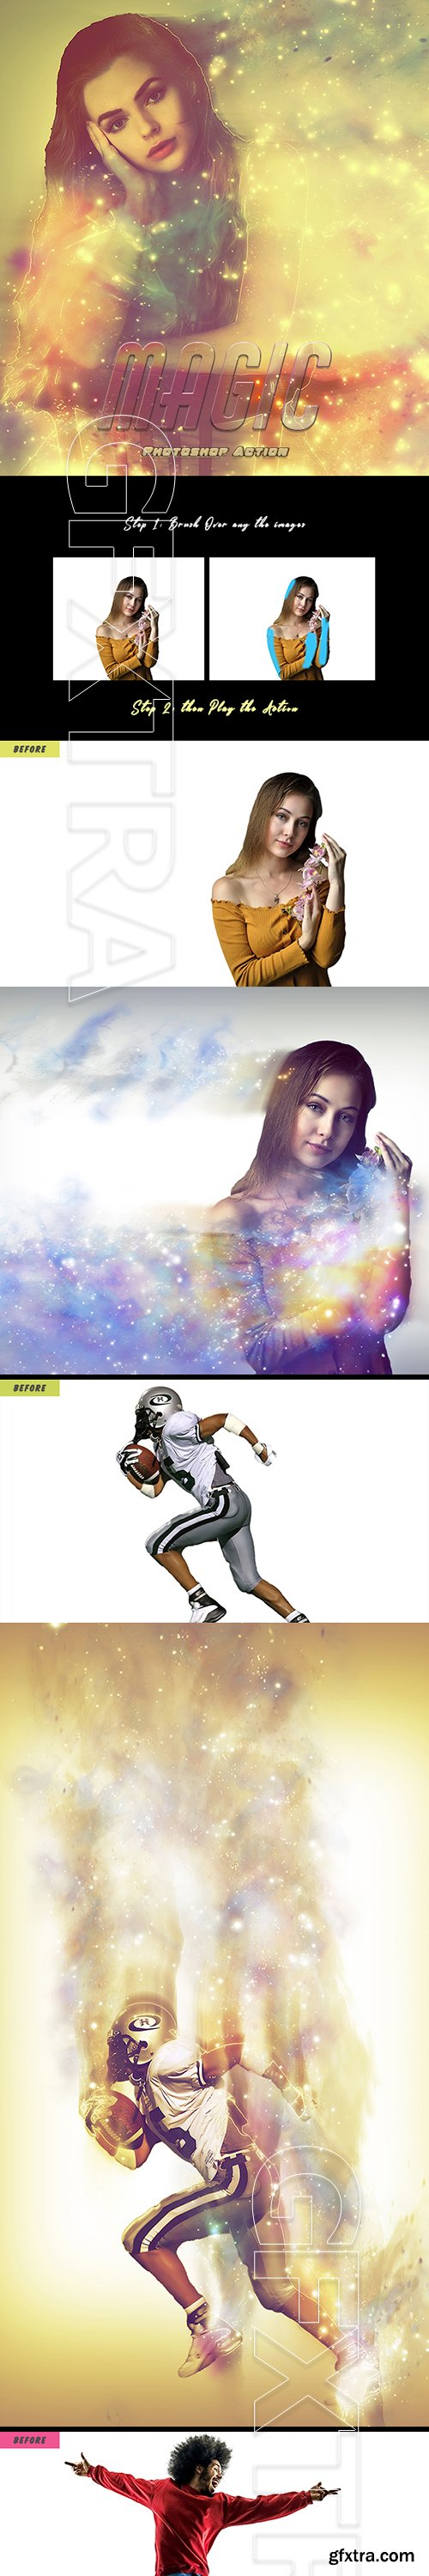 GraphicRiver - Magical Photoshop Action 29654163